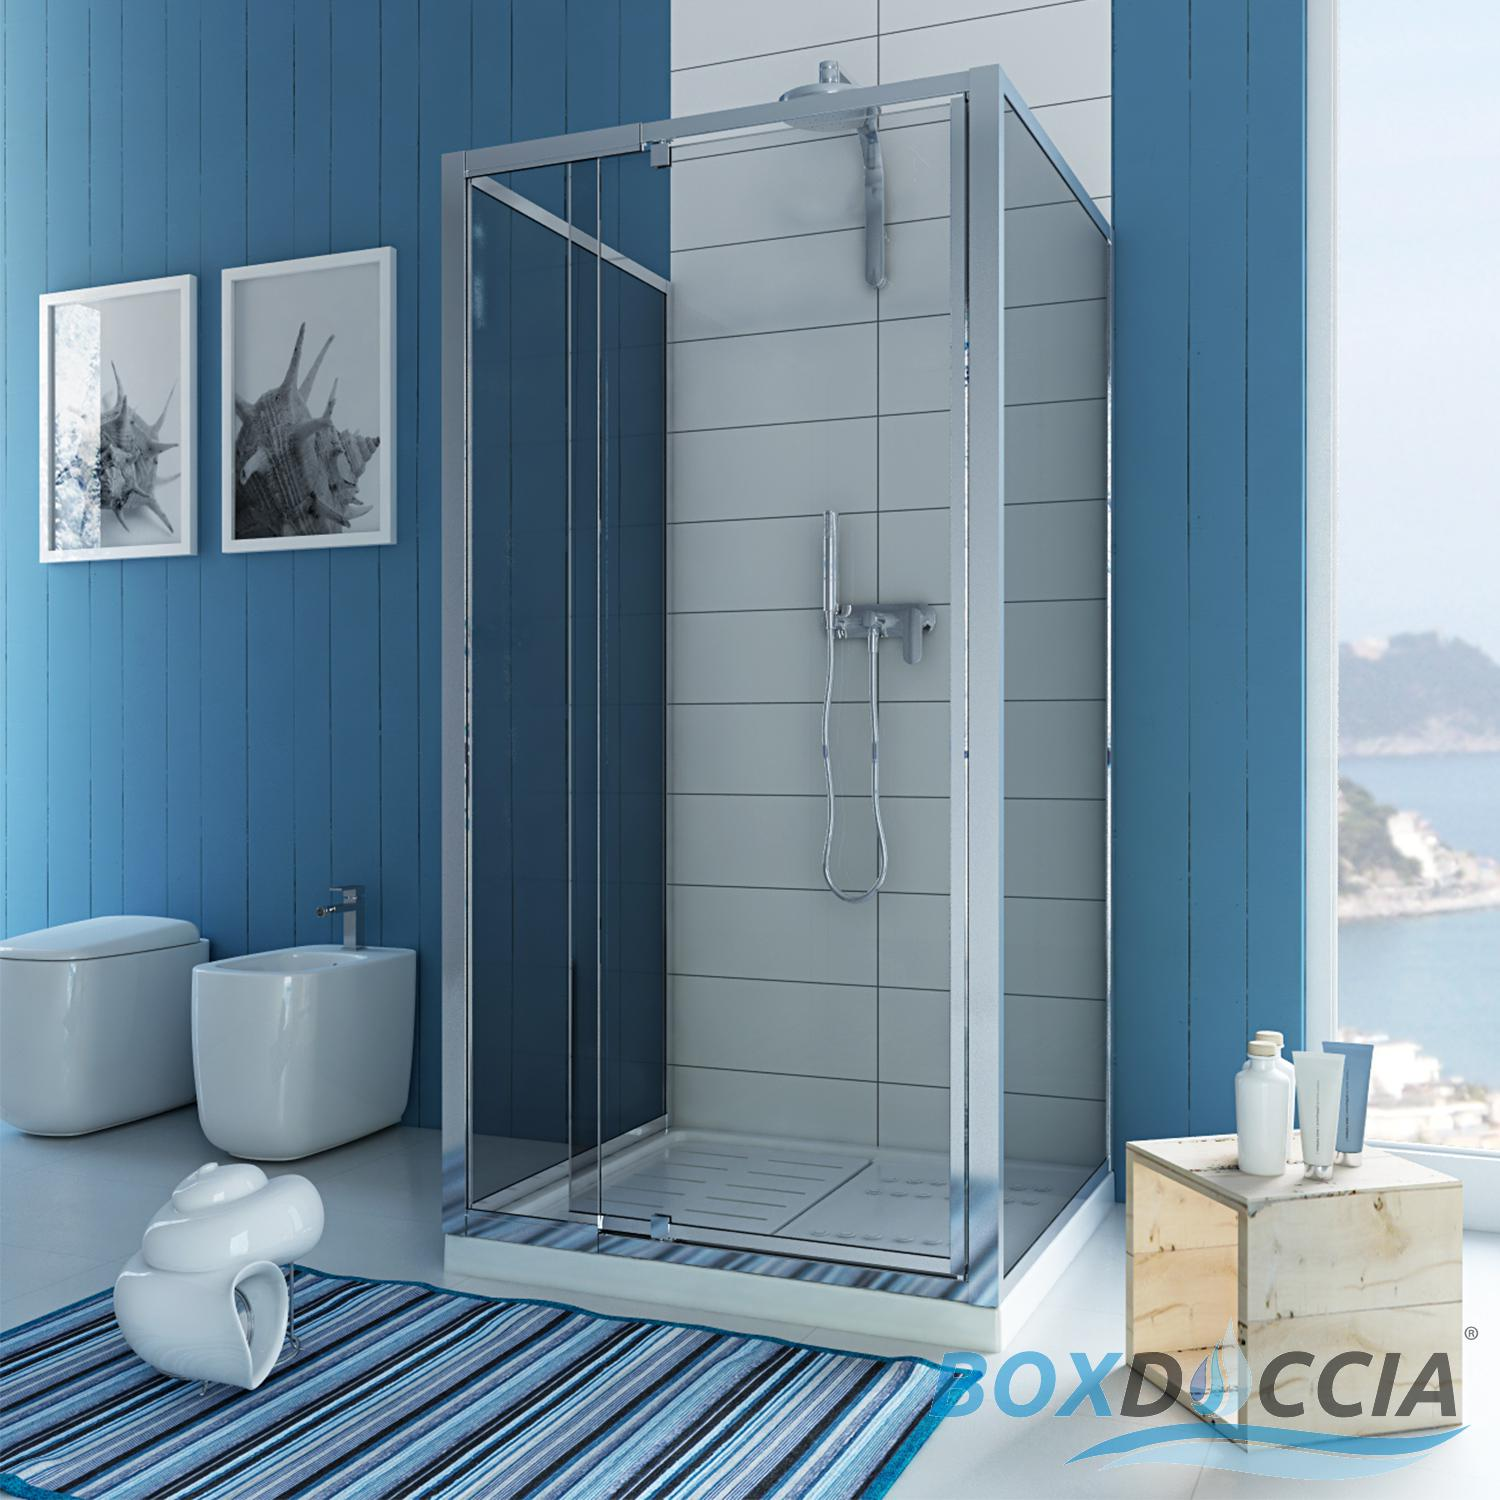 Details about SHOWER ENCLOSURE 3 SIDED PIVOT DOOR HINGE CUBICLE GLASS BATHROOM SCREEN